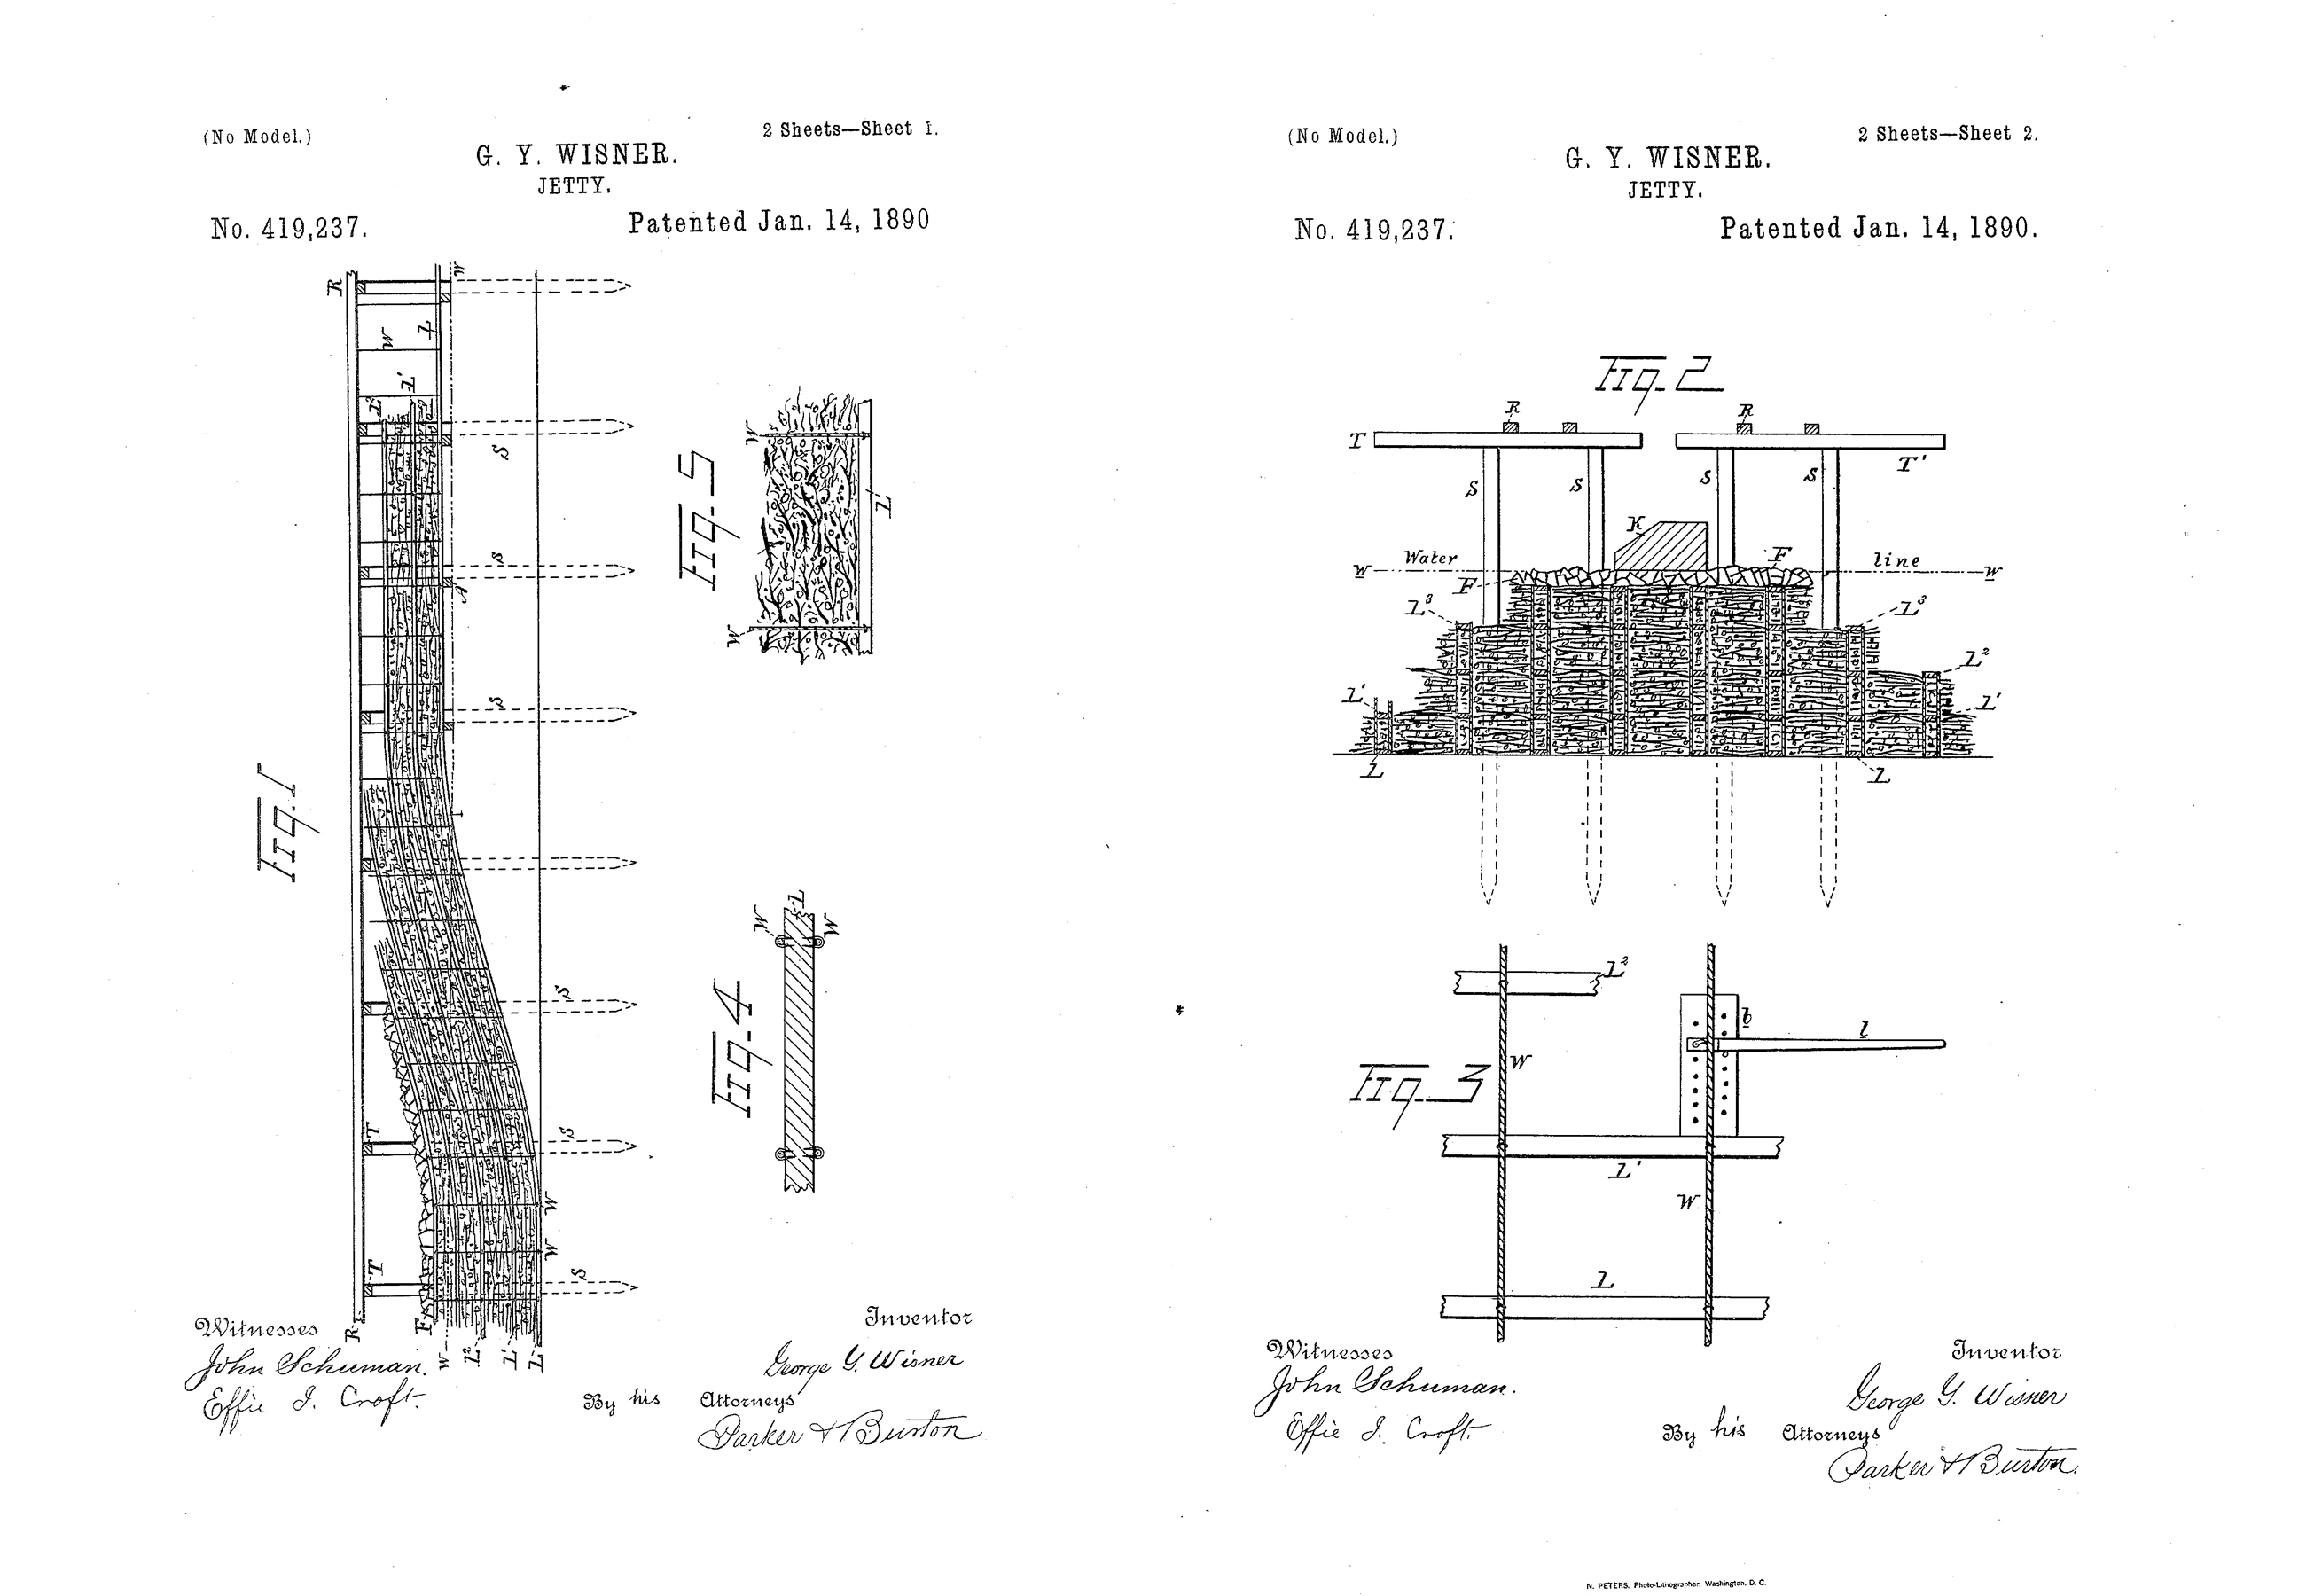 Engineers mimicked Eads precedent and patented experimental technologies, including the new jetty systems such as US419237 (right) by George Wisner—who prototyped his system at the mouth of the Brazos River after failure of a USACE jetty. Images from USPTO.gov